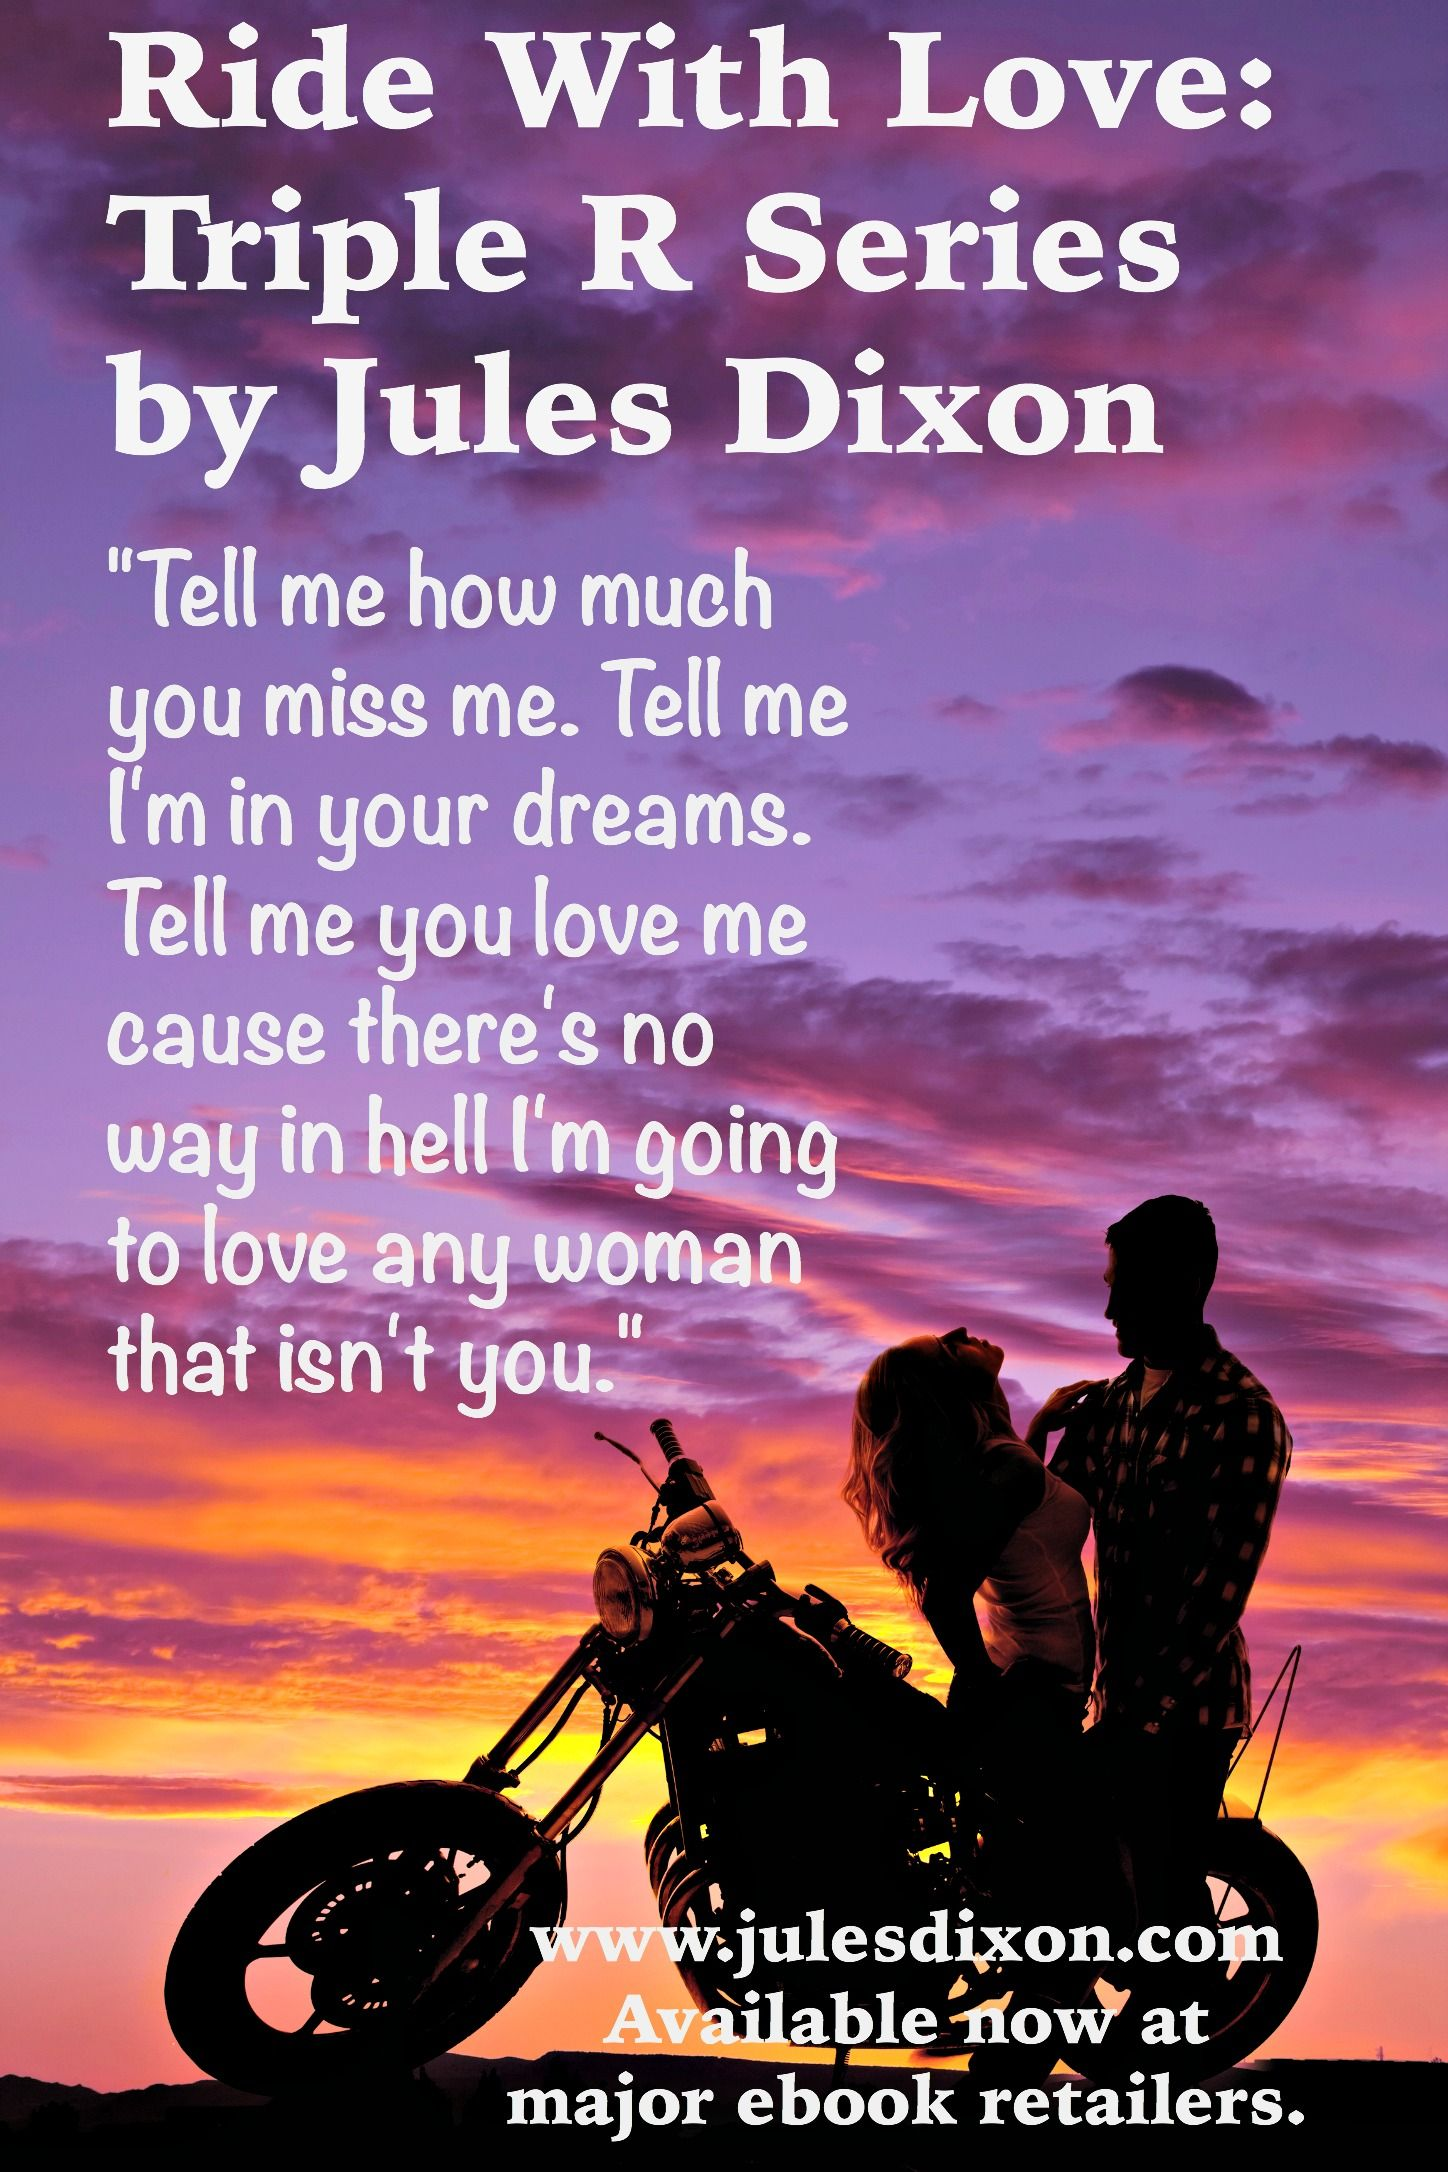 Ride With Love by Jules Dixon. Kanyon Hills, what does a guy have to do, Willow Harper, to get you back?